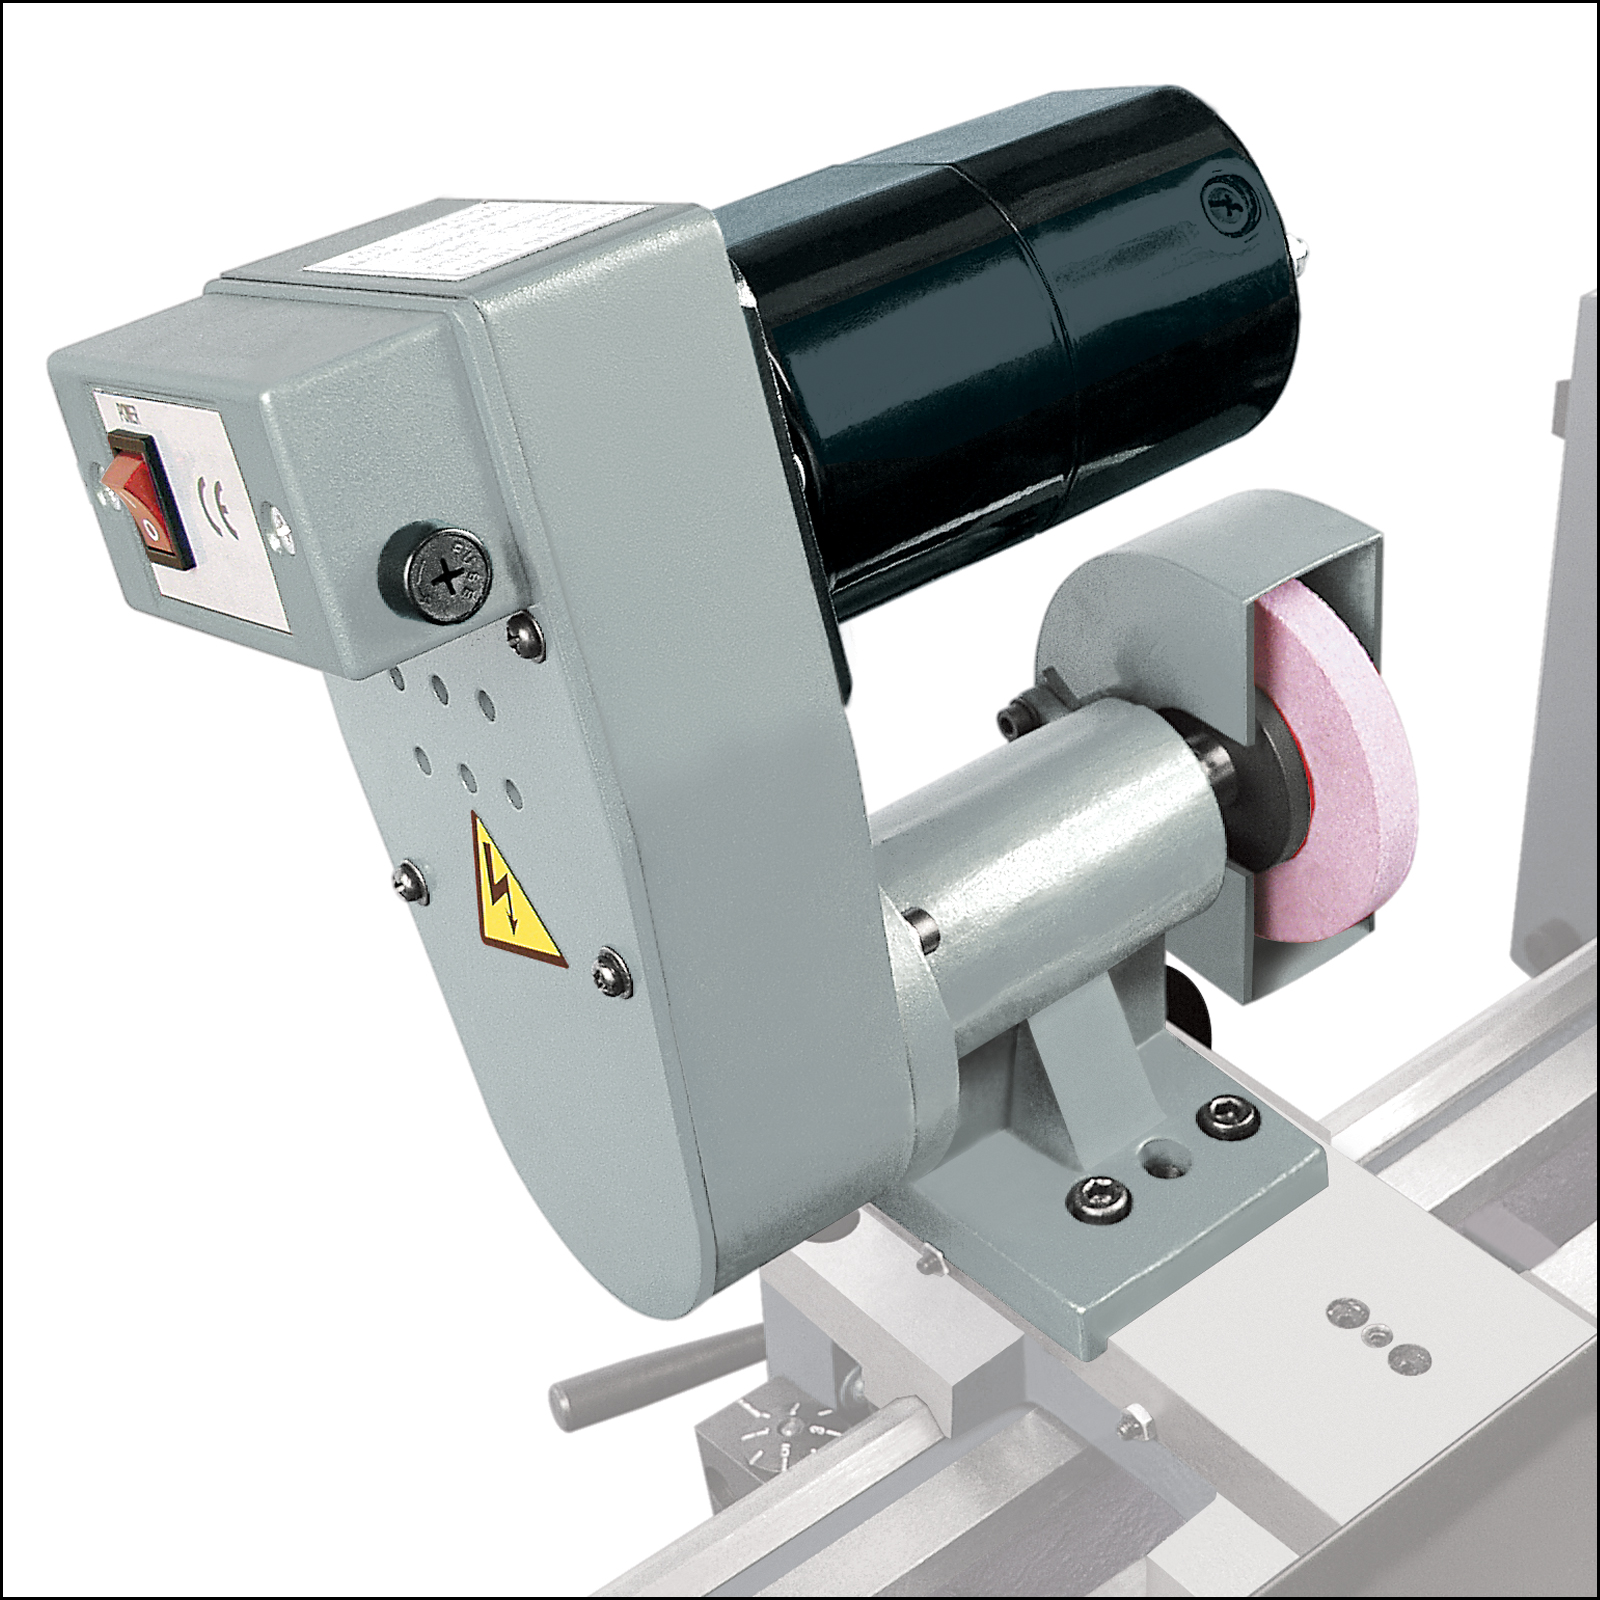 Grinder Attachment for Mini Lathes